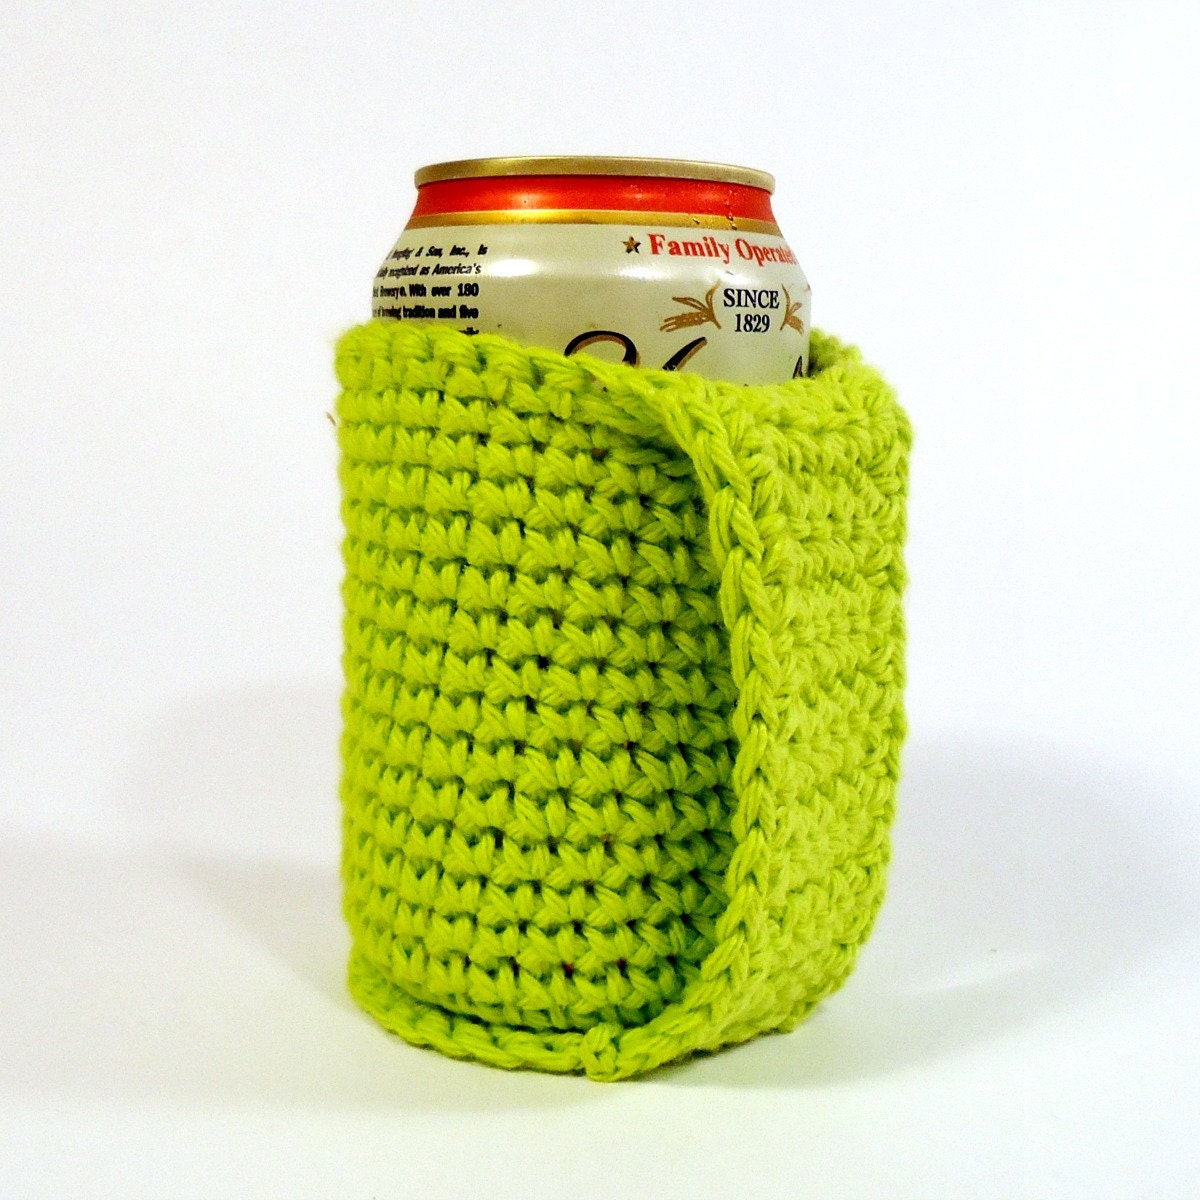 Crochet Patterns For Koozies : Items similar to Beer Coozie Drink Koozie Cozy Crochet ...